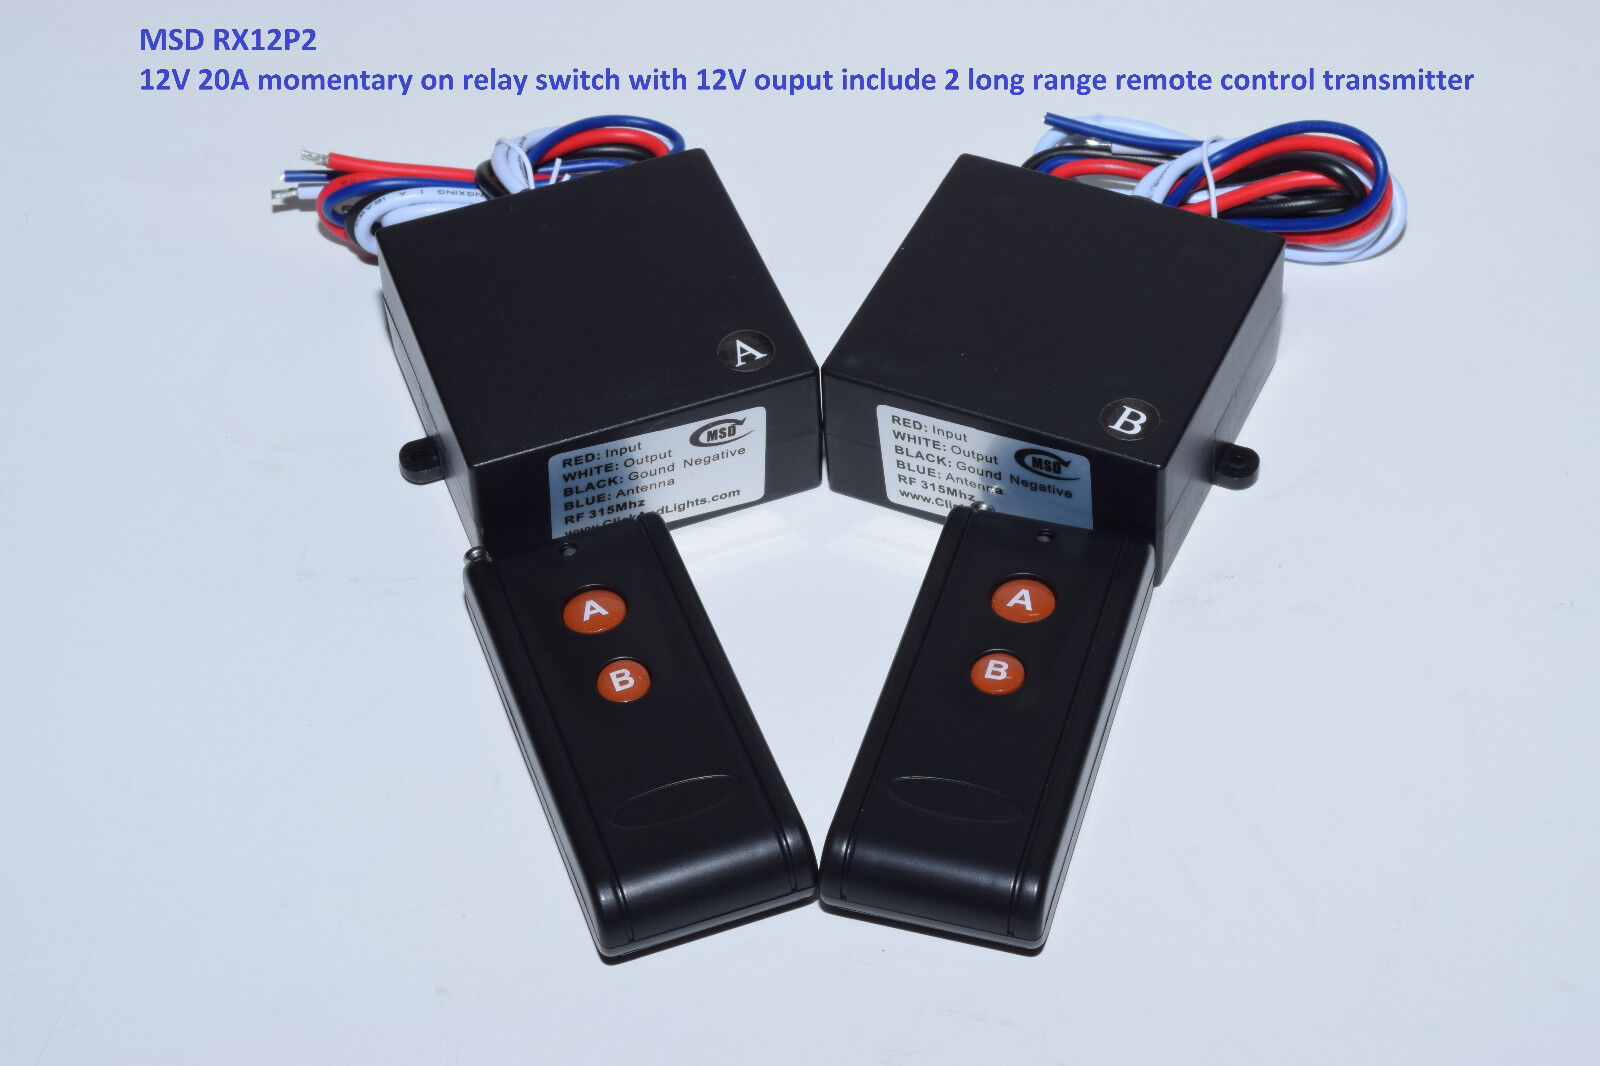 MSD-INC 12V 30A 2CH MOMENTARY switch with 2 long range remote control RX12P2